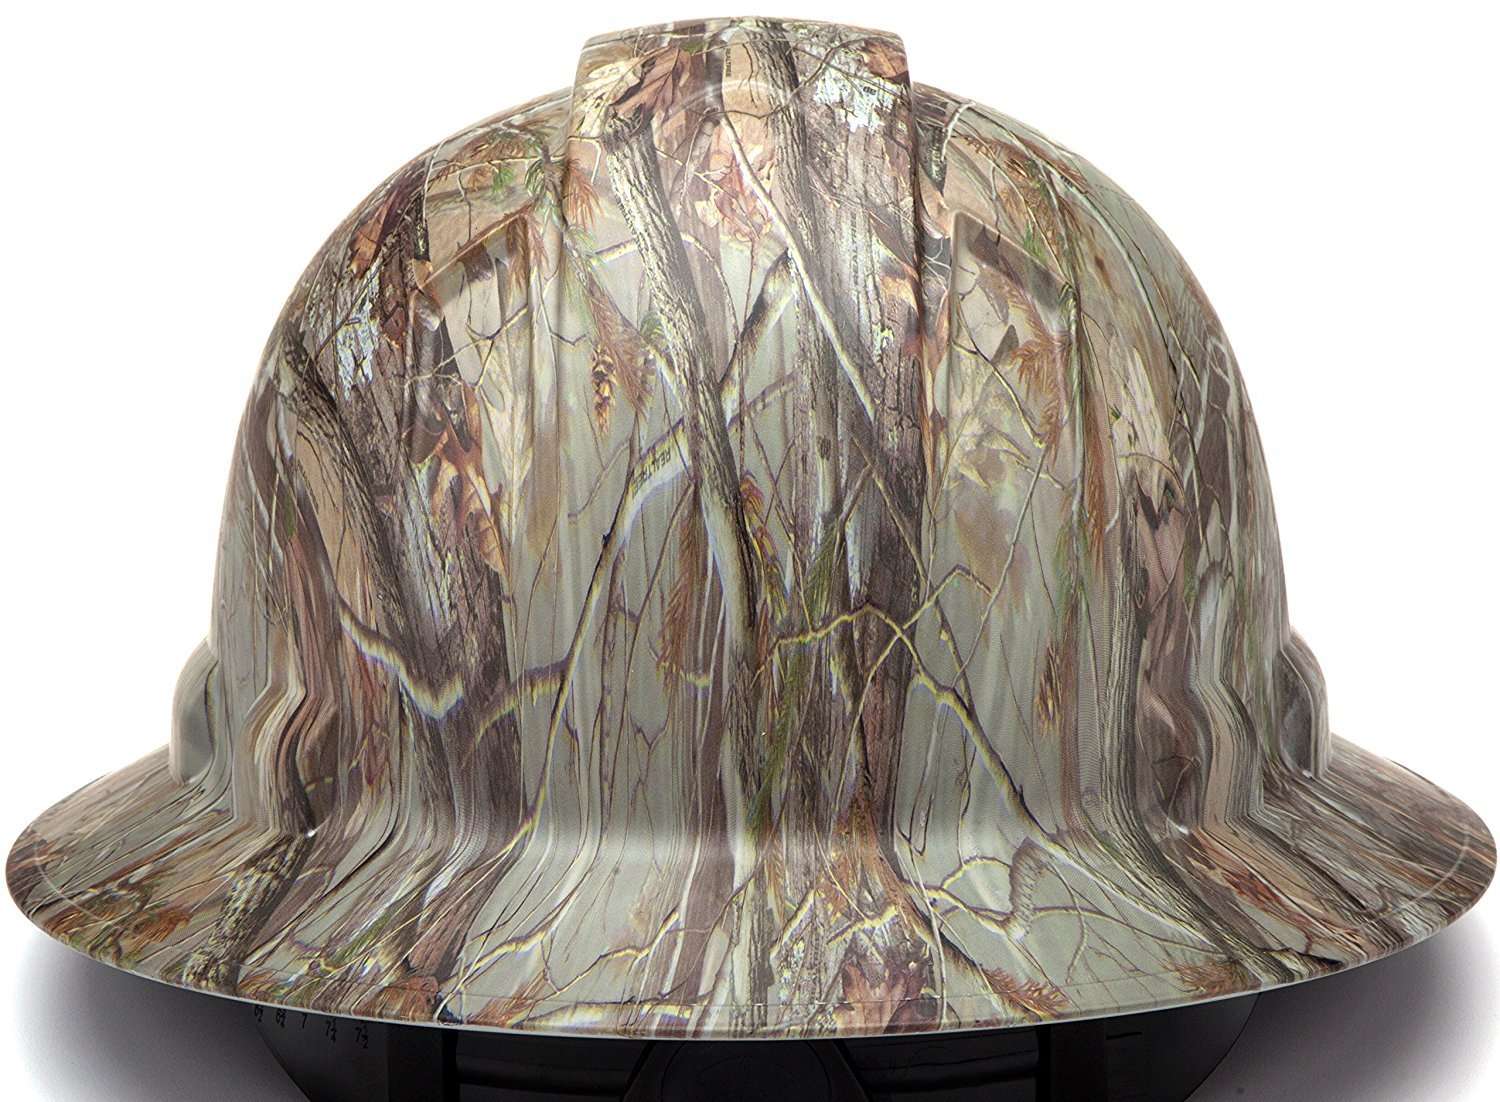 Full Brim Hard Hat, Adjustable Ratchet 4 Pt Suspension, Durable Protection safety helmet, Graphite Pattern Design, Camo Matte, by Tuff America